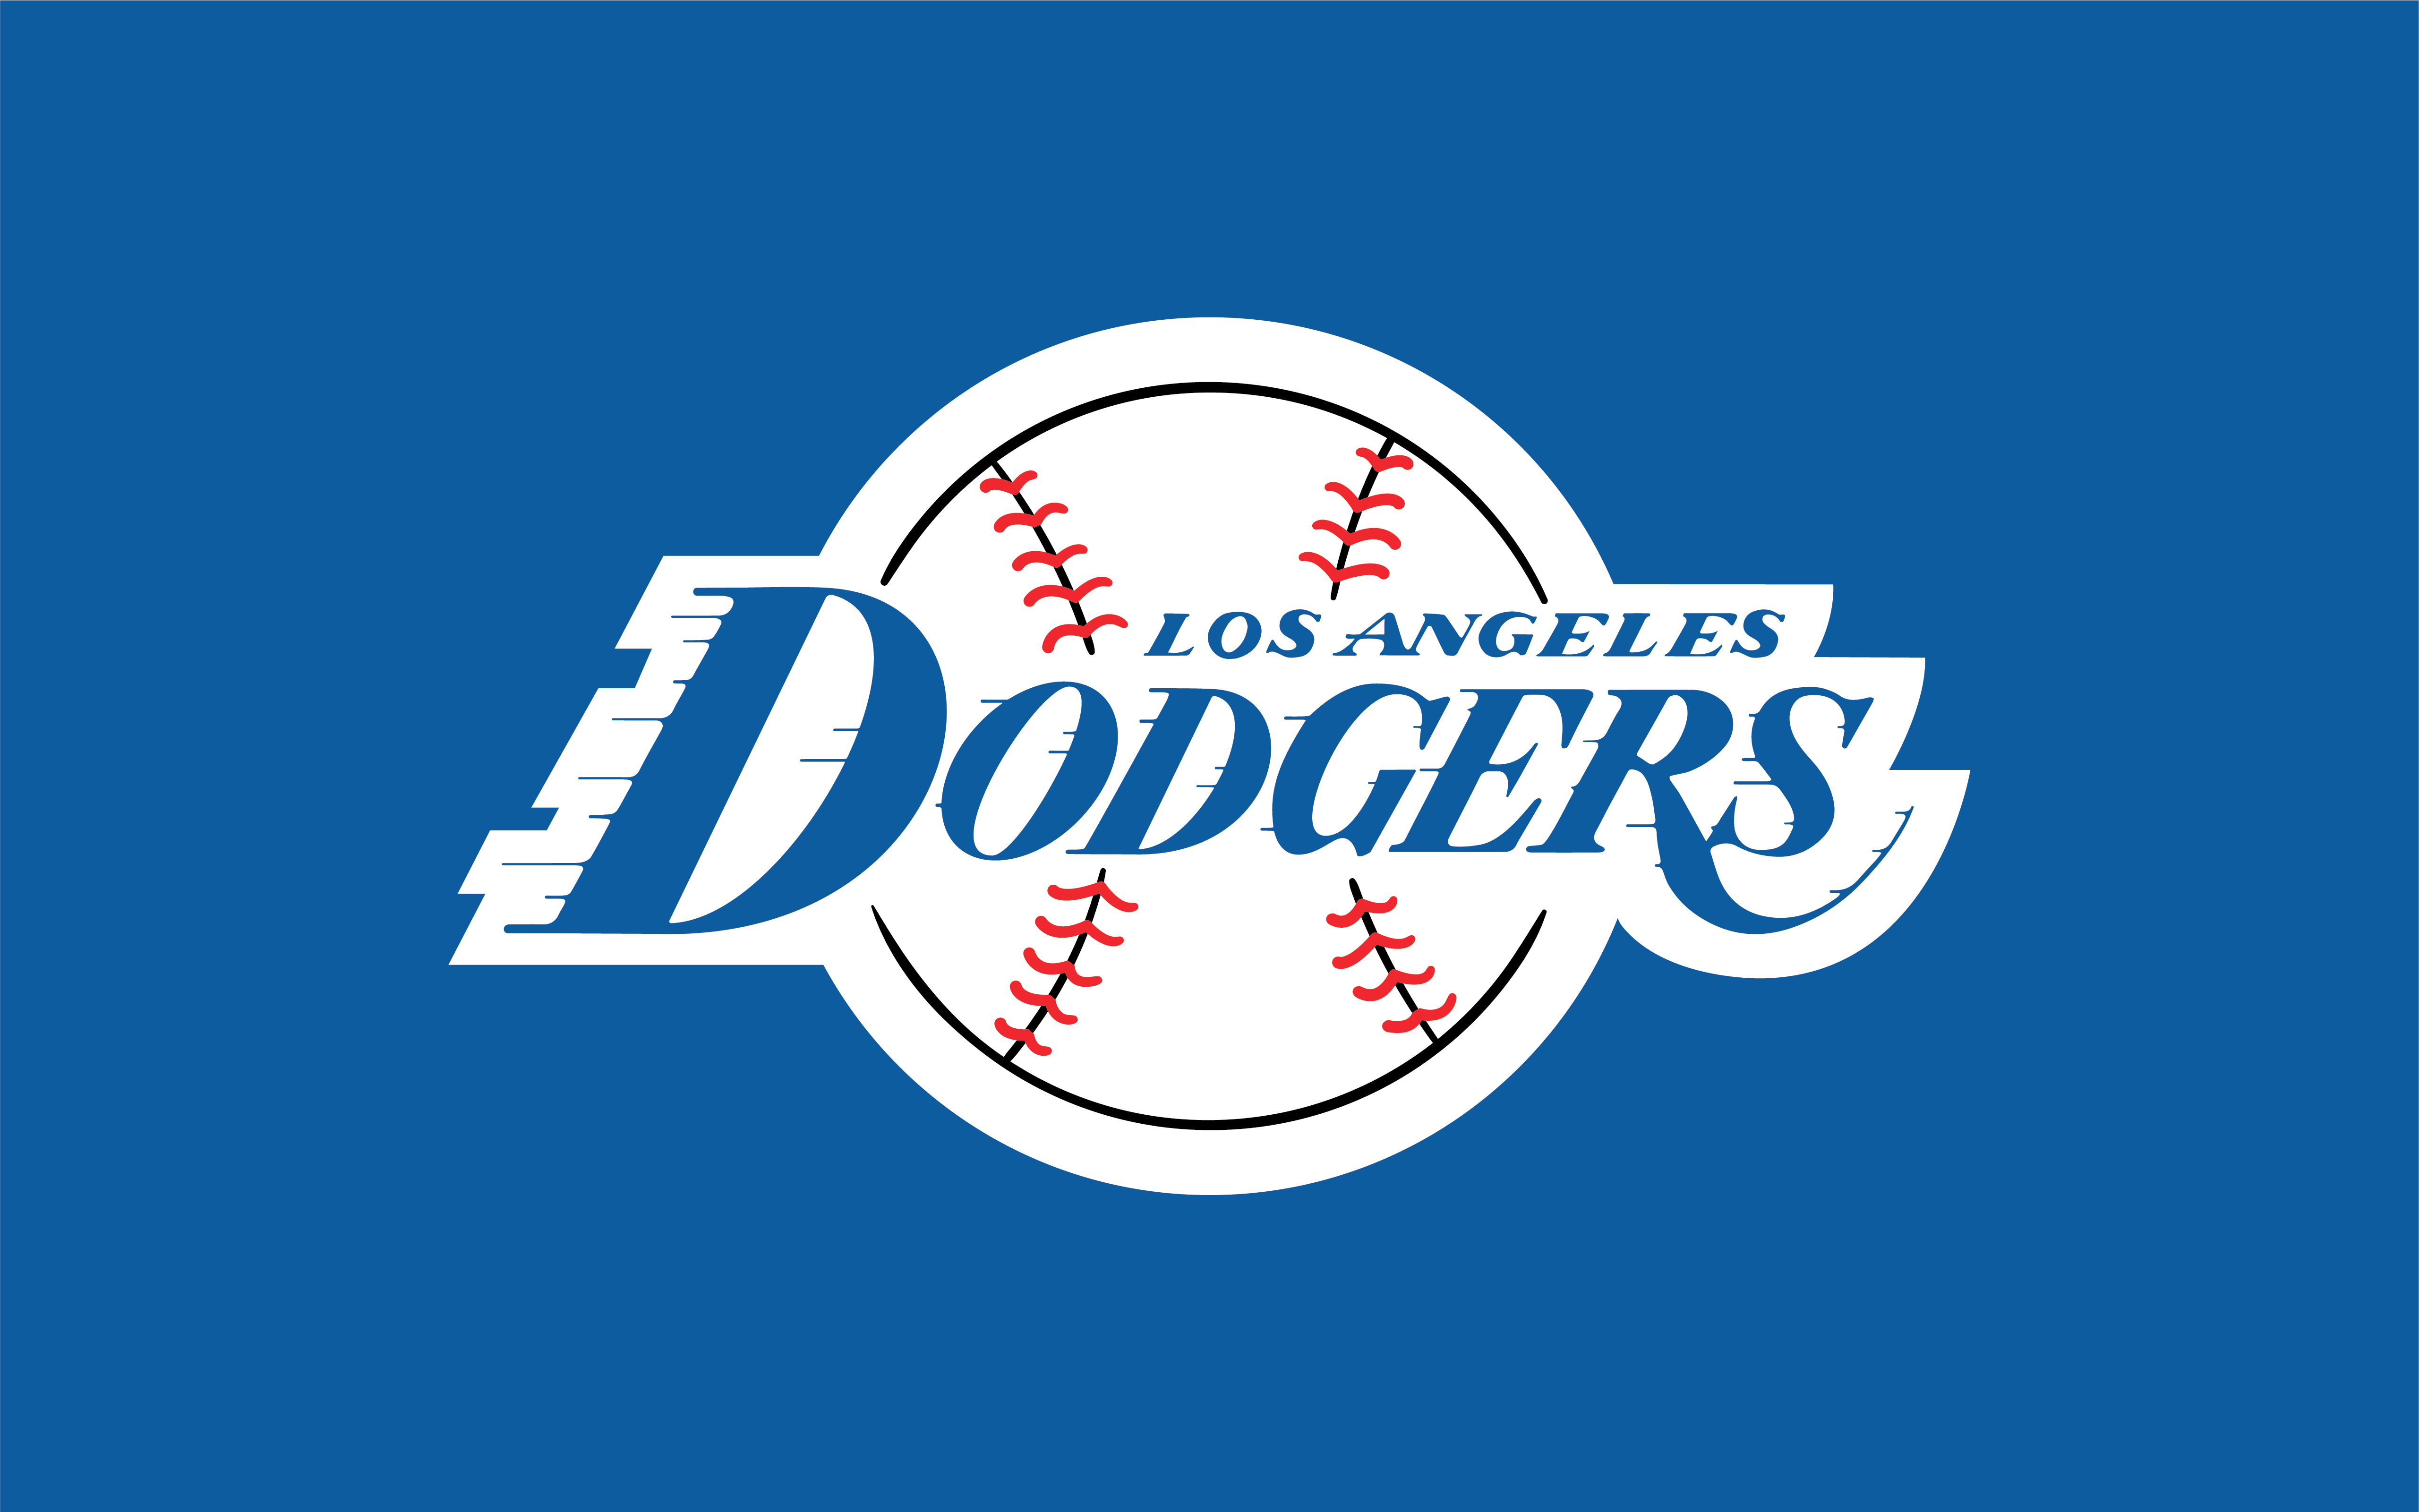 Los Angeles Dodgers Logo - I made Los Angeles Dodgers in the style of the Lakers logo : Dodgers